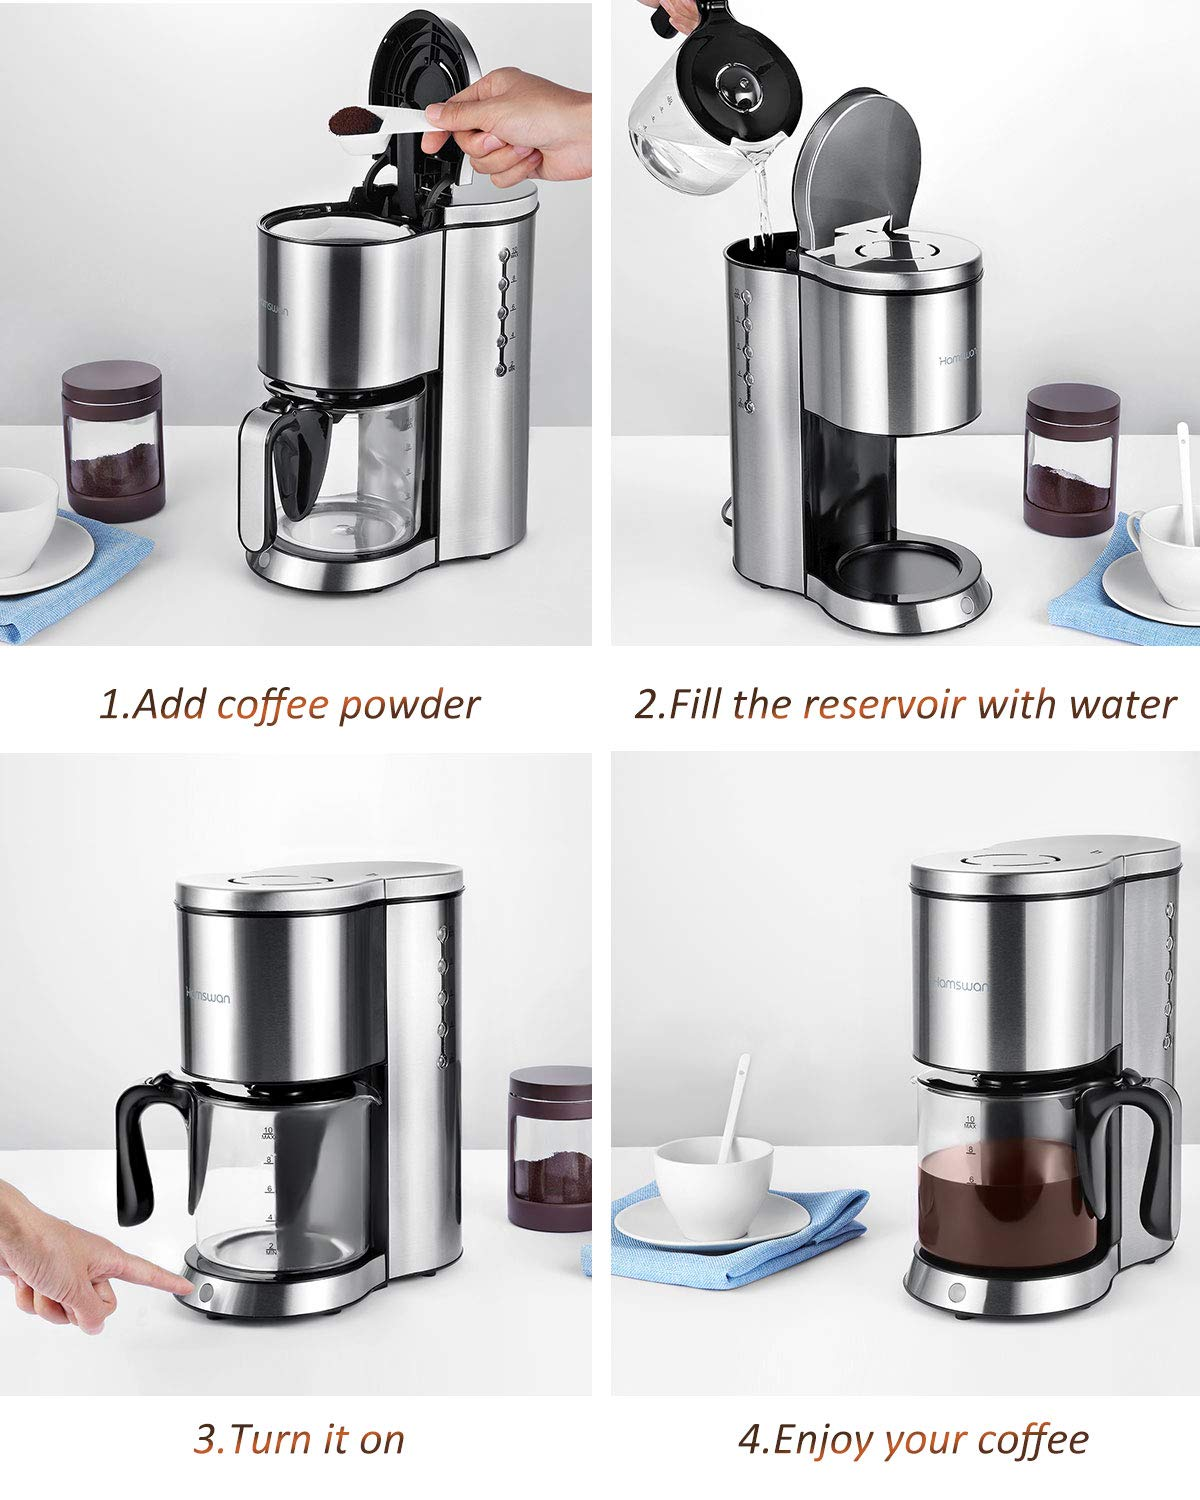 Drip Coffee Maker, HAMSWAN AD-103 Stainless Steel Coffee Maker Coffee Pot, Small 10 Cup Coffee Machine with Glass Thermal Carafe, Insulated, Keep Warm, Automatic Shut Off for Single Serve & House Use by HAMSWAN (Image #5)